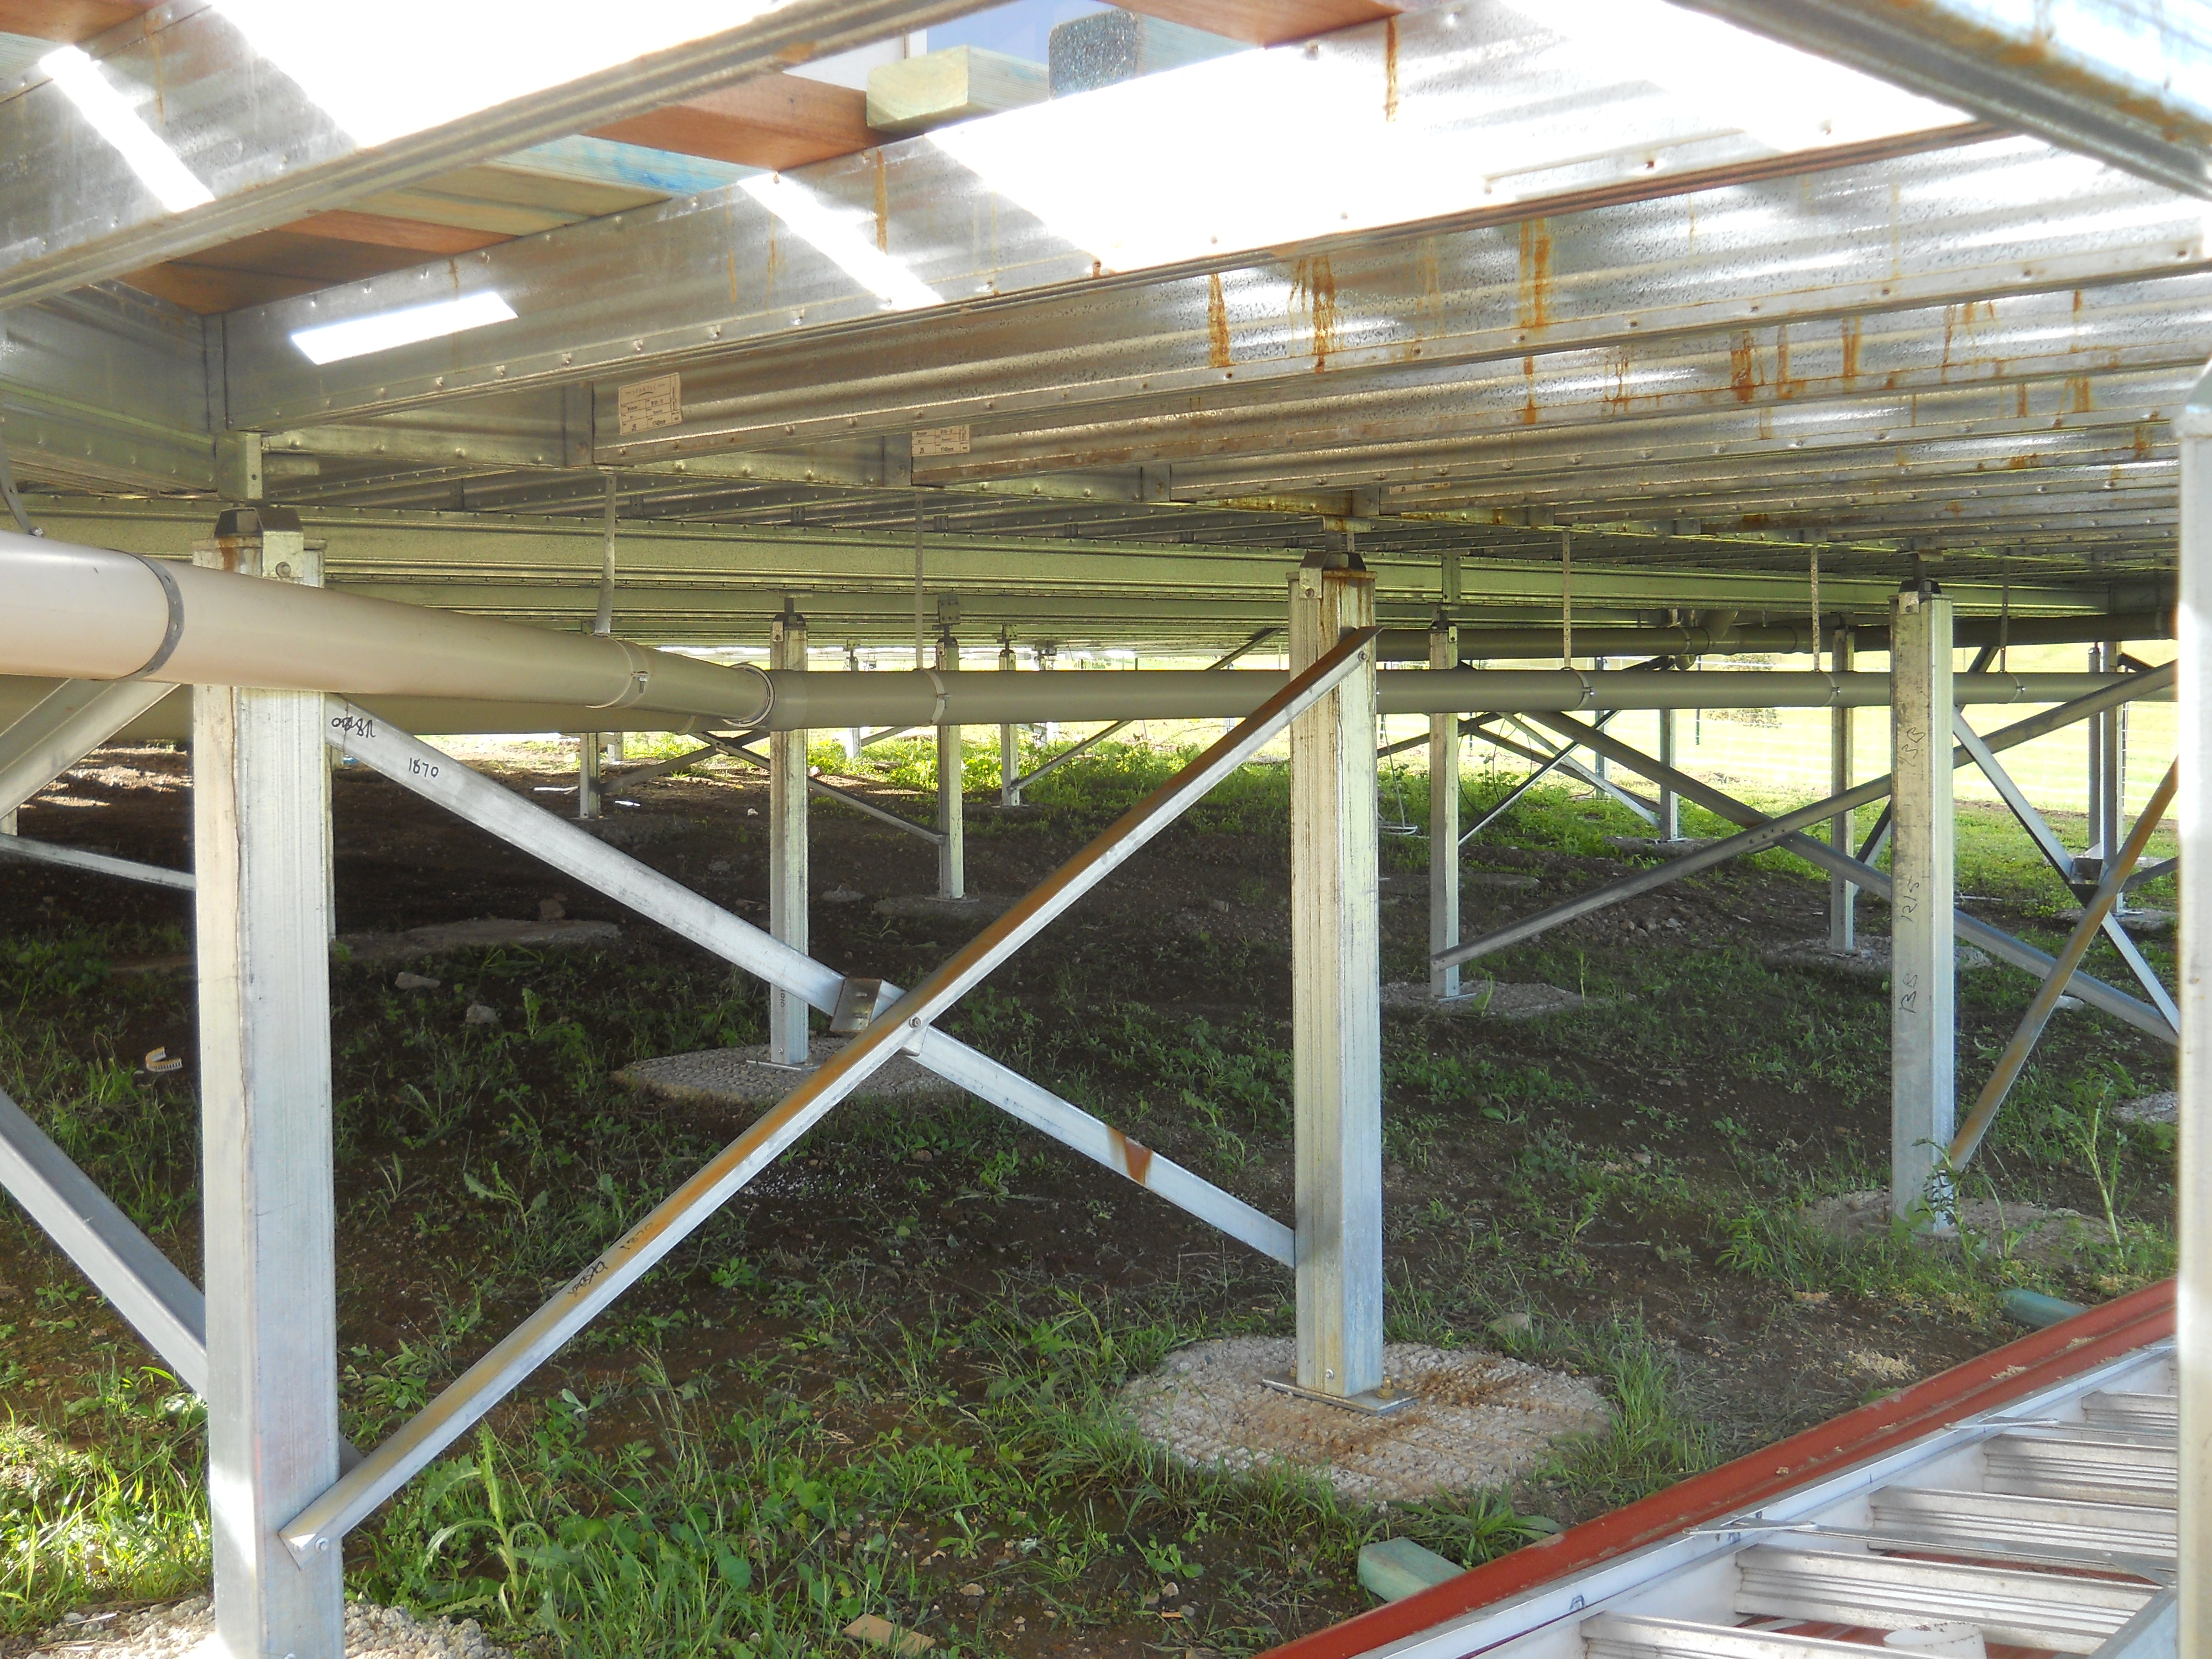 looking underneath the floor at the steel floor frame supported by